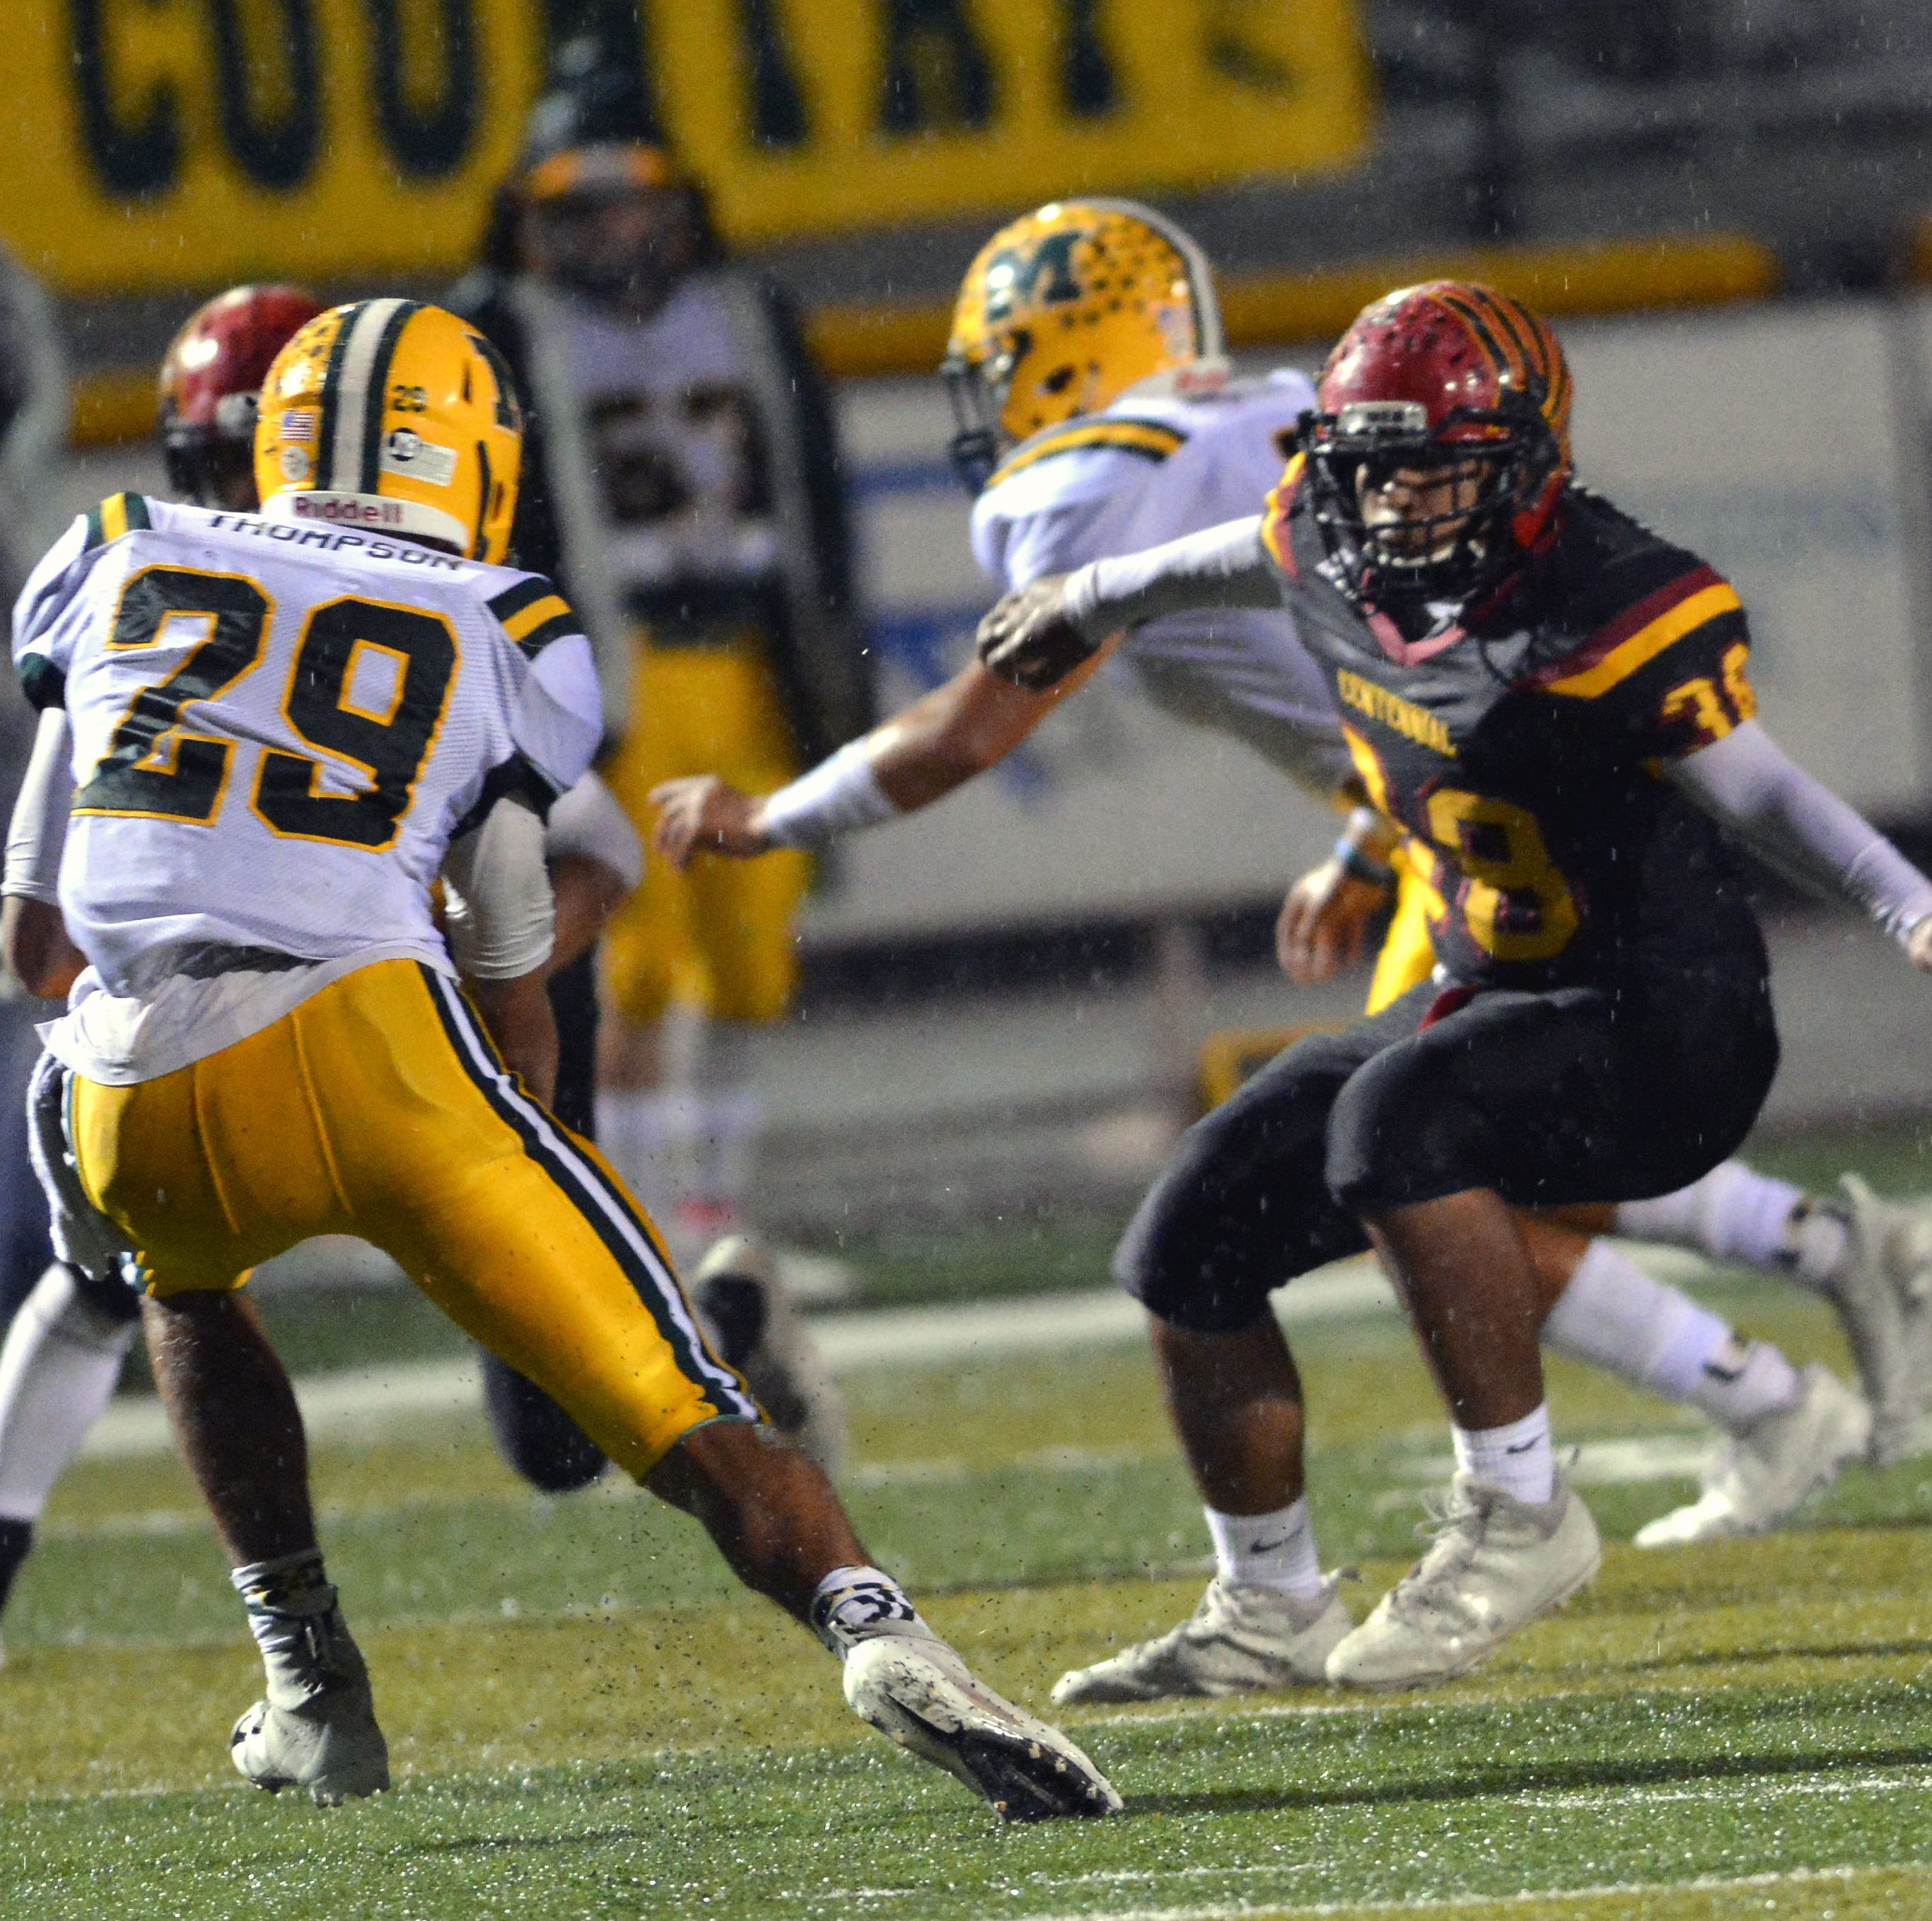 Centennial, Hobbs meet with District 3-6A title implications on the line